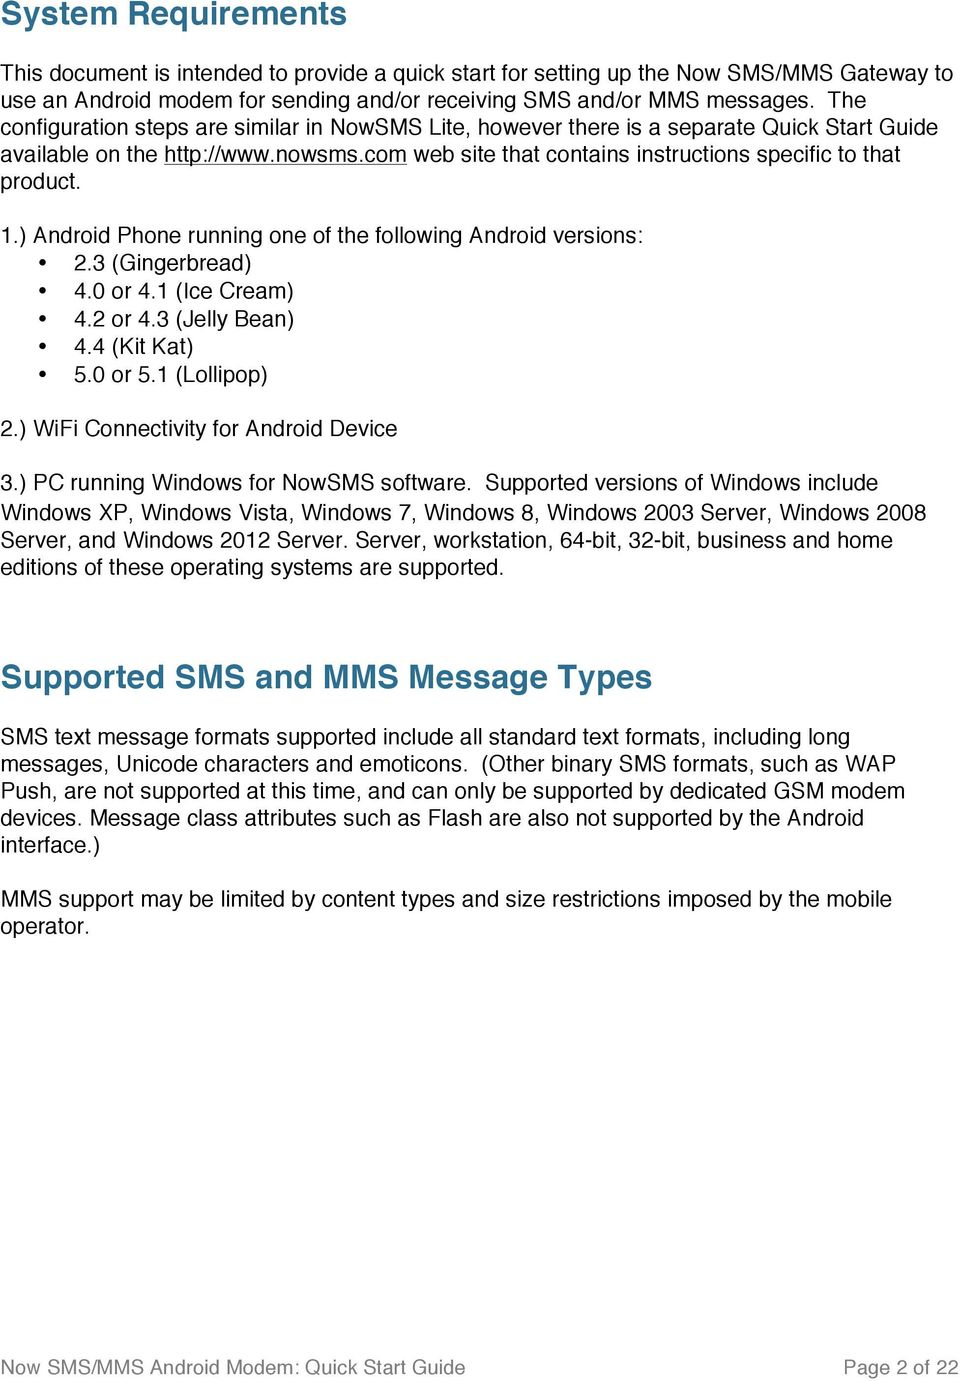 Now SMS/MMS Android Modem Quick Start Guide - PDF